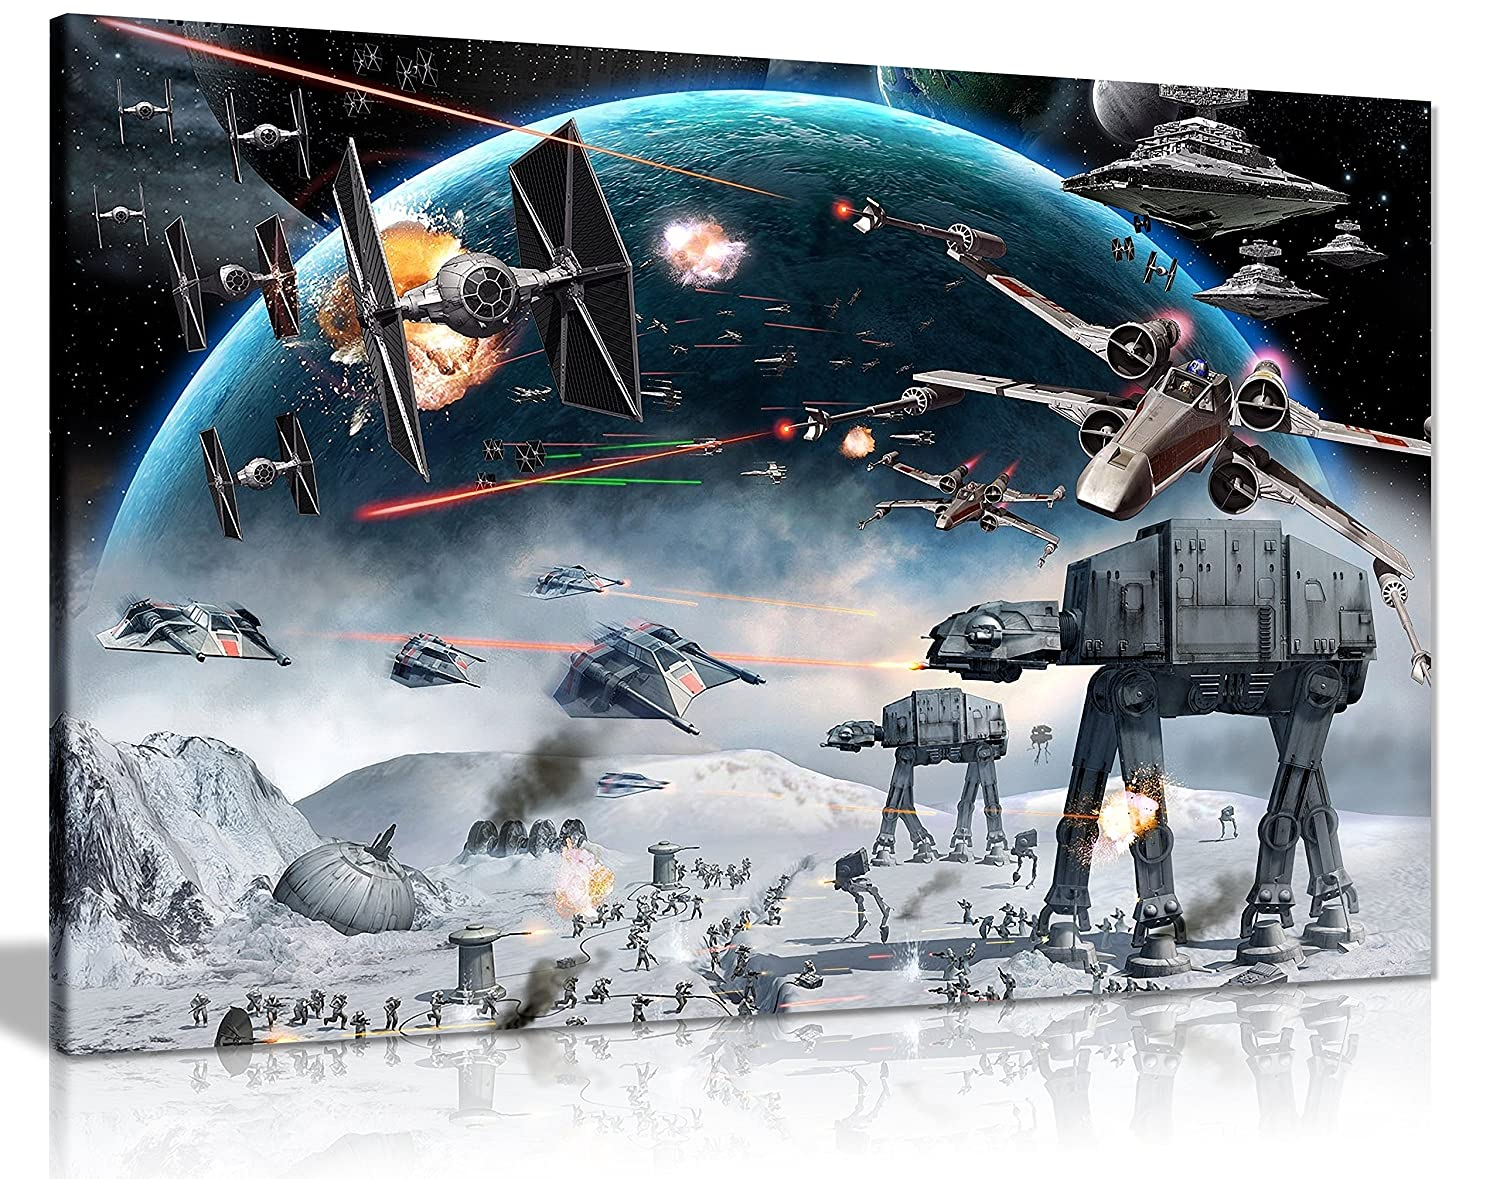 star wars movie canvas print framed storm troopers amazon co uk star wars canvas art print framed picture large 20x30 inches a1